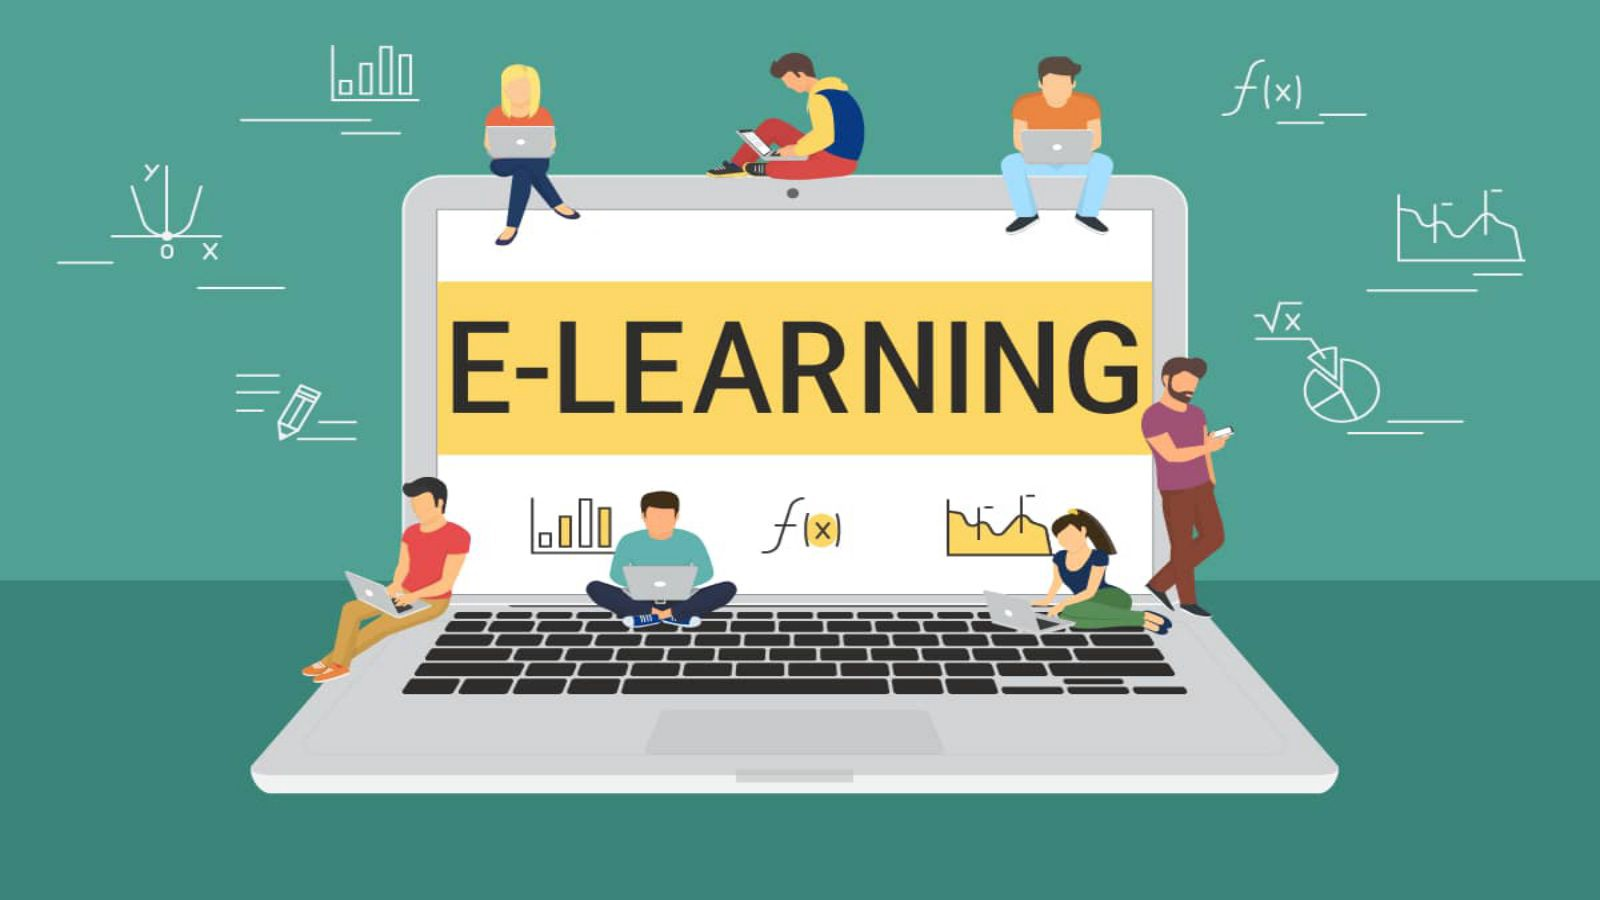 Benefits Of E Learning The Development Of Information By Kanan Rashed Jul 2020 Medium